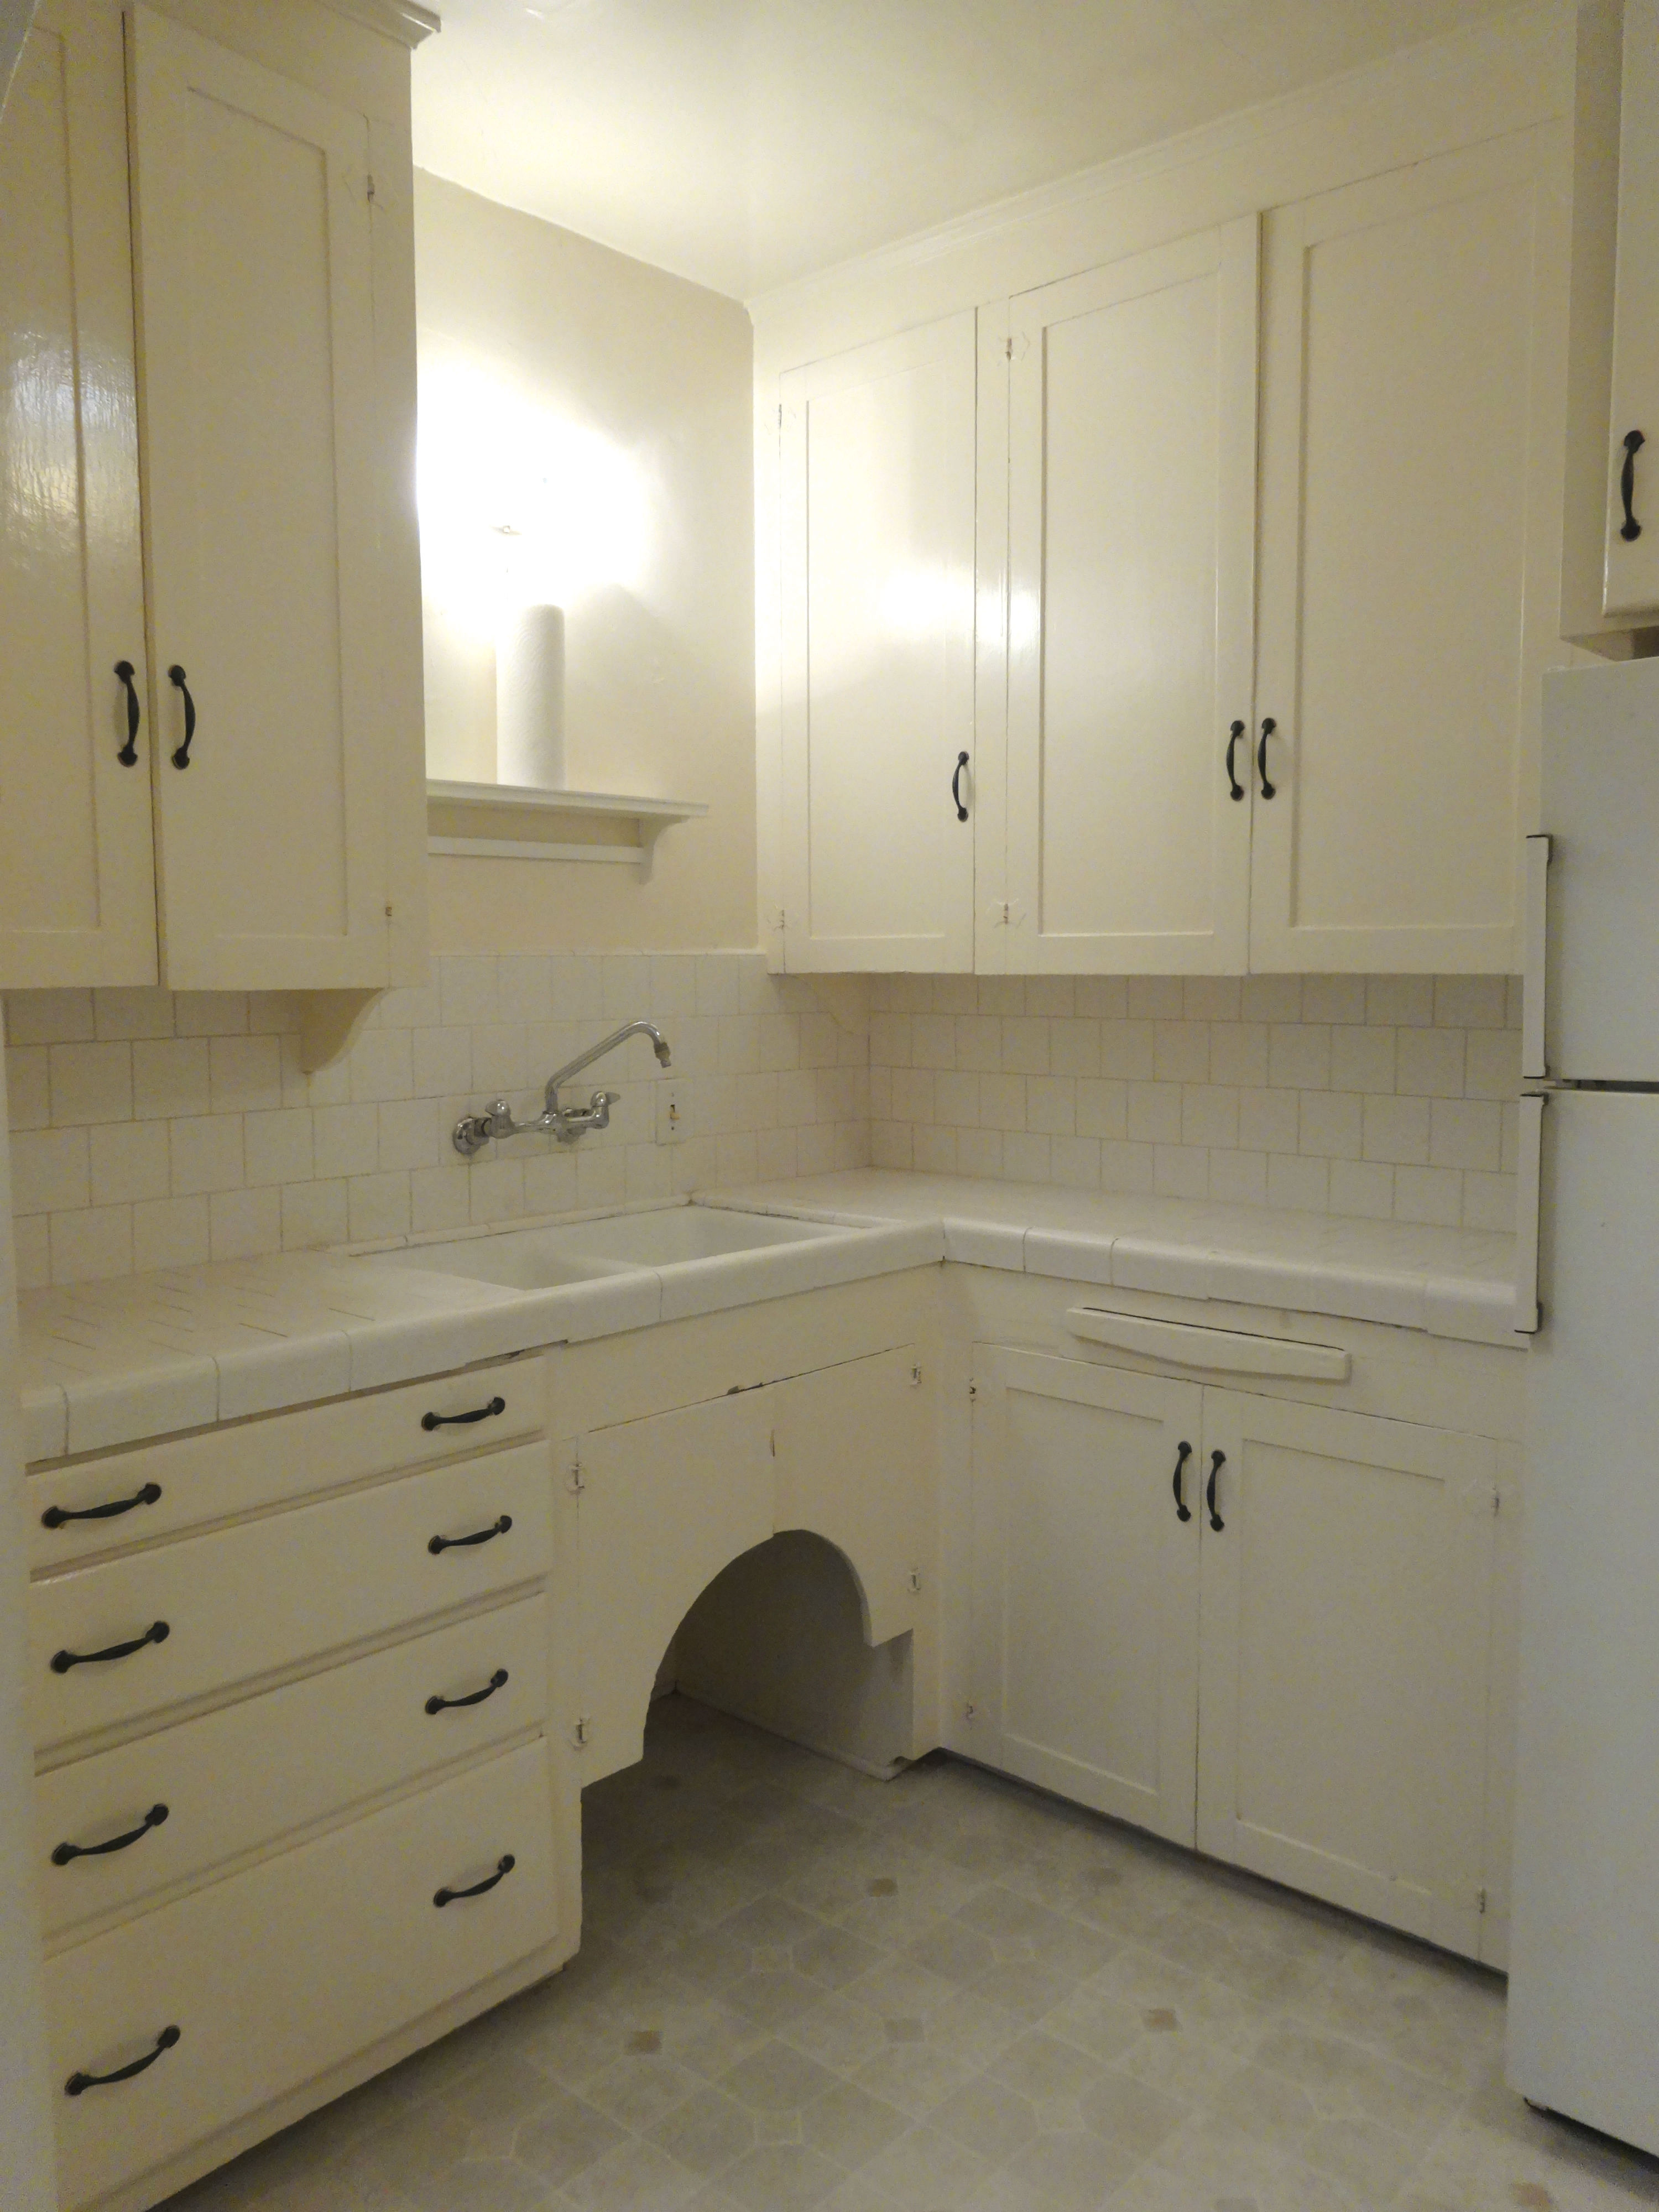 Elegant Lots of cabinetry in kitchen even more storage above gas stove